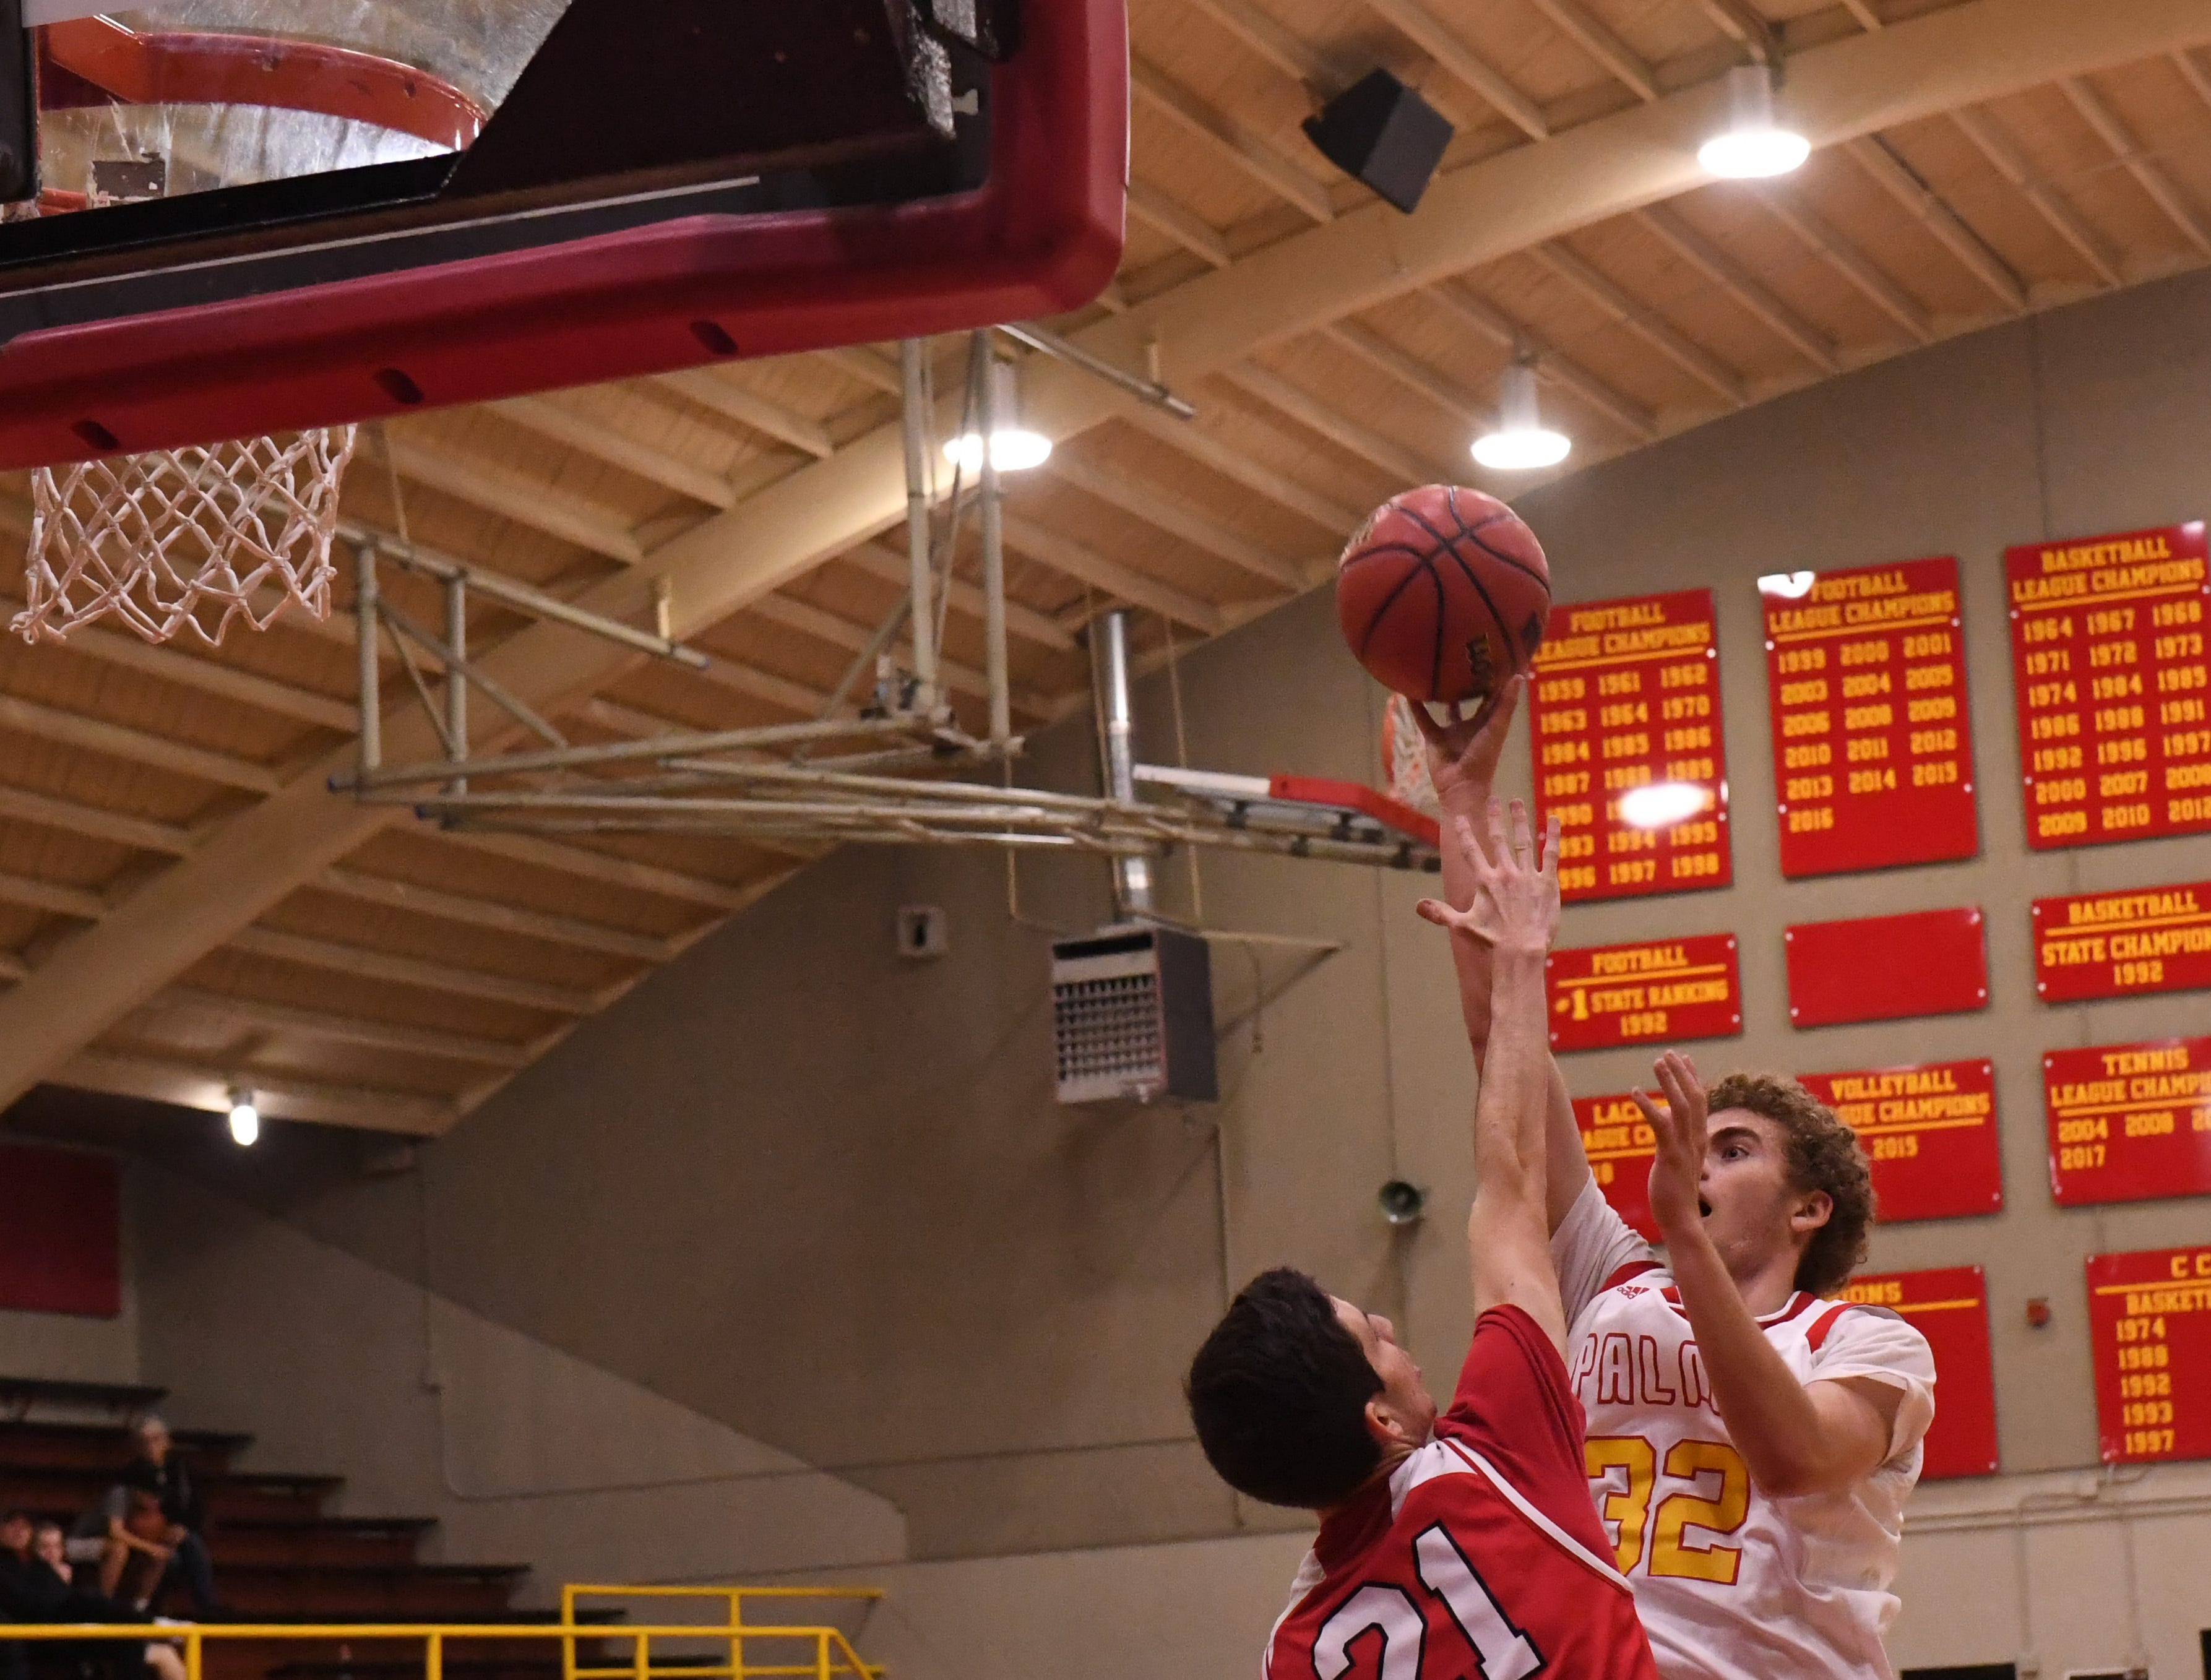 Palma forward Colin Neff (32) releases a shot in the lane over a defender.